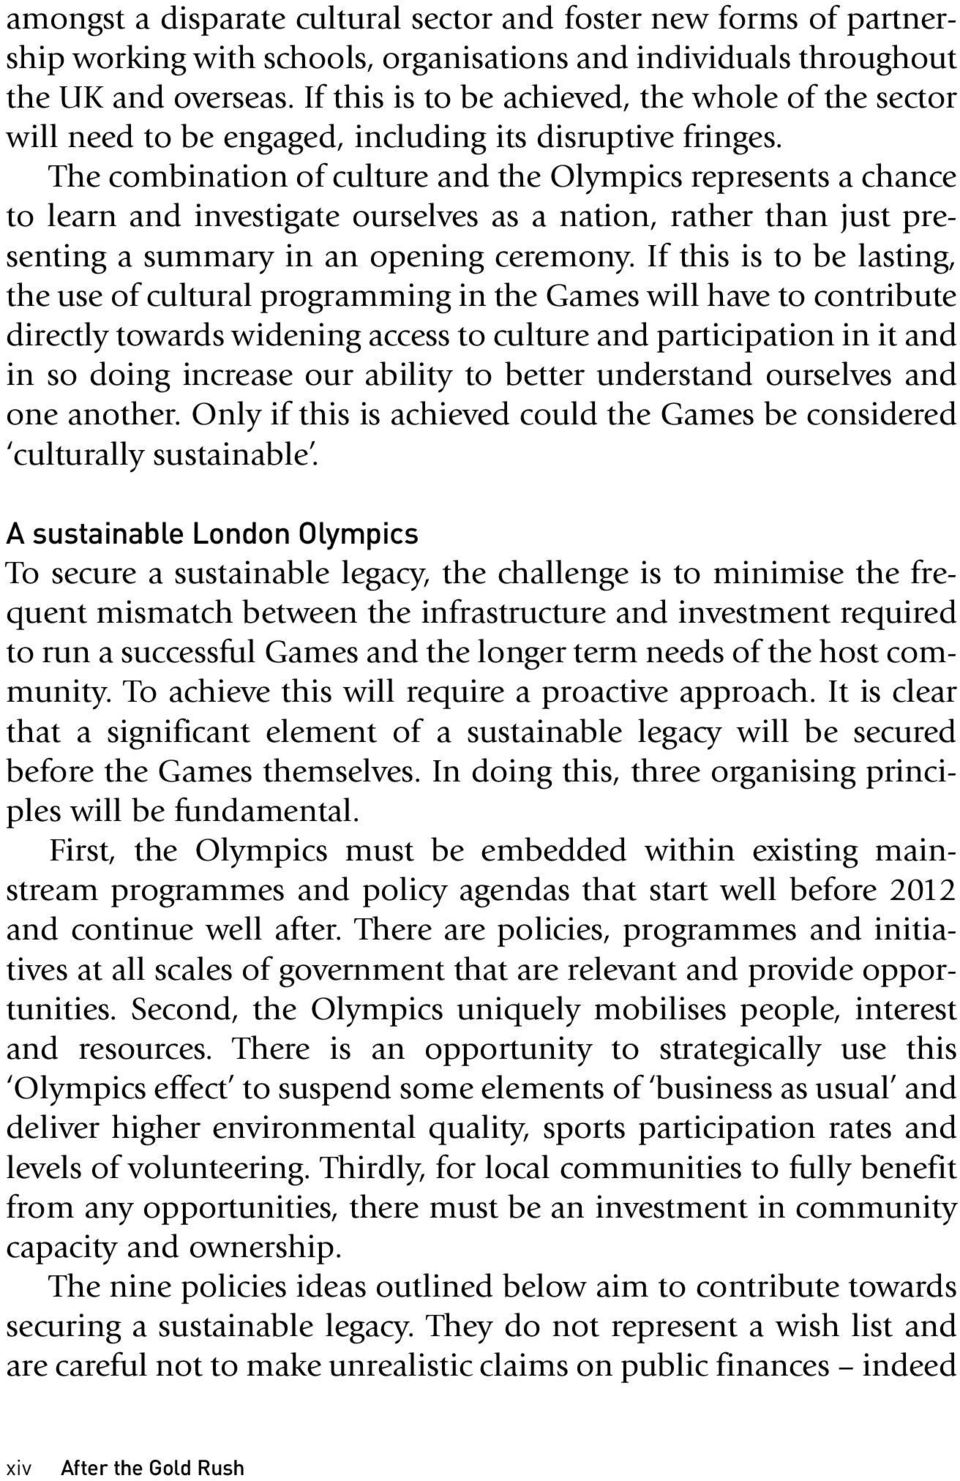 The combination of culture and the Olympics represents a chance to learn and investigate ourselves as a nation, rather than just presenting a summary in an opening ceremony.